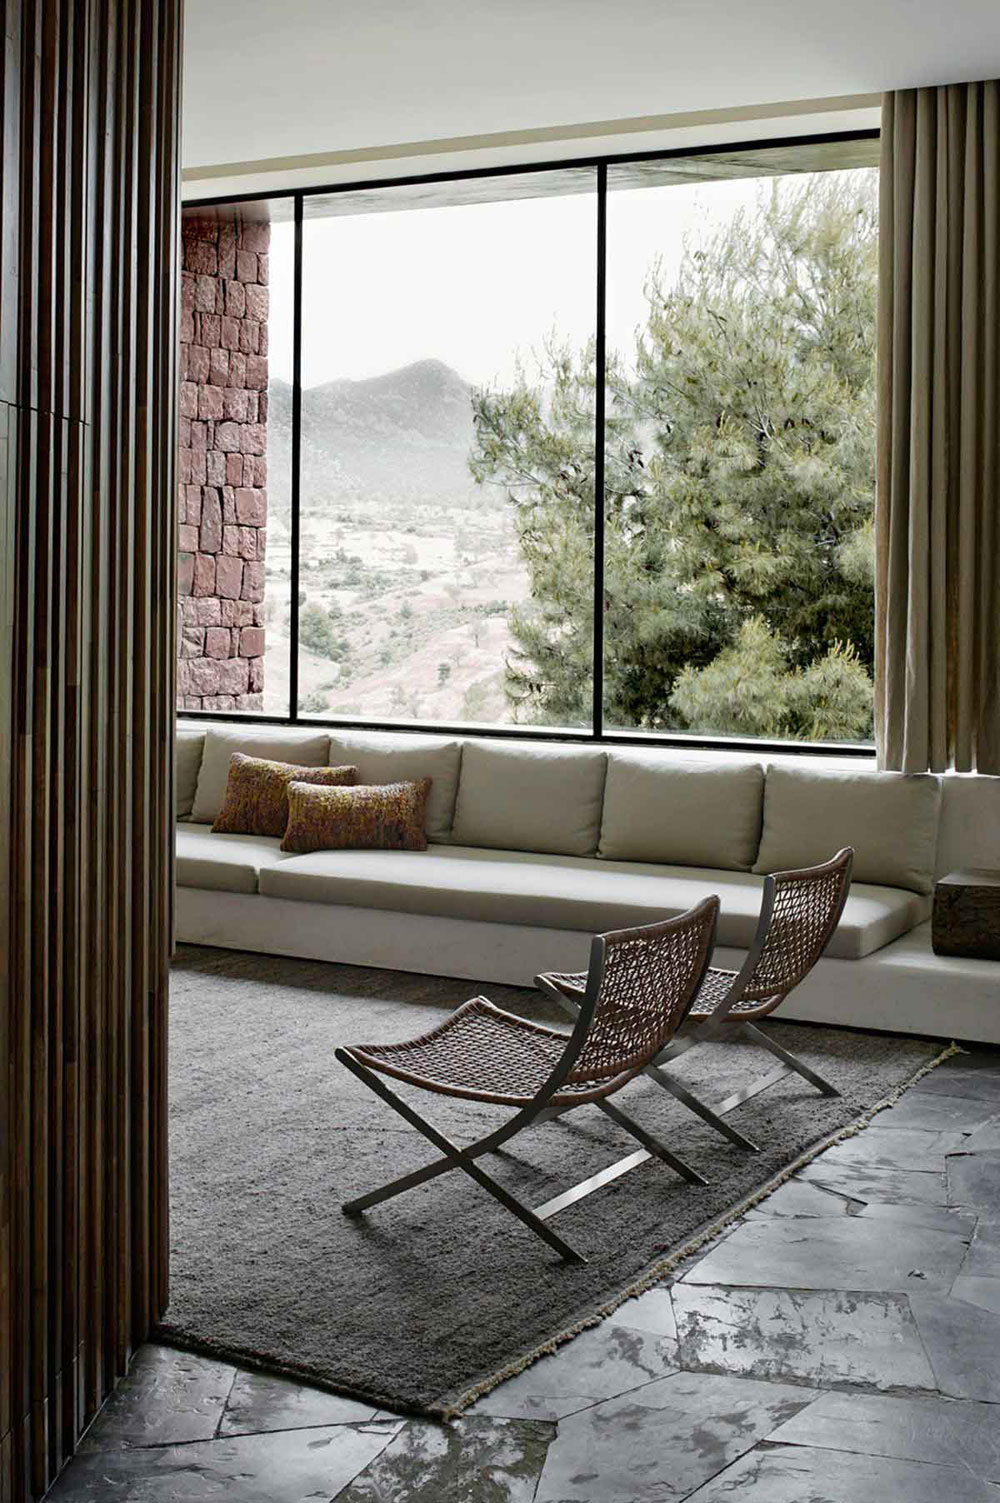 Moroccan, Home, Interior, Industrial, Minimal Inspiration, Living Room, View, Oracle Fox